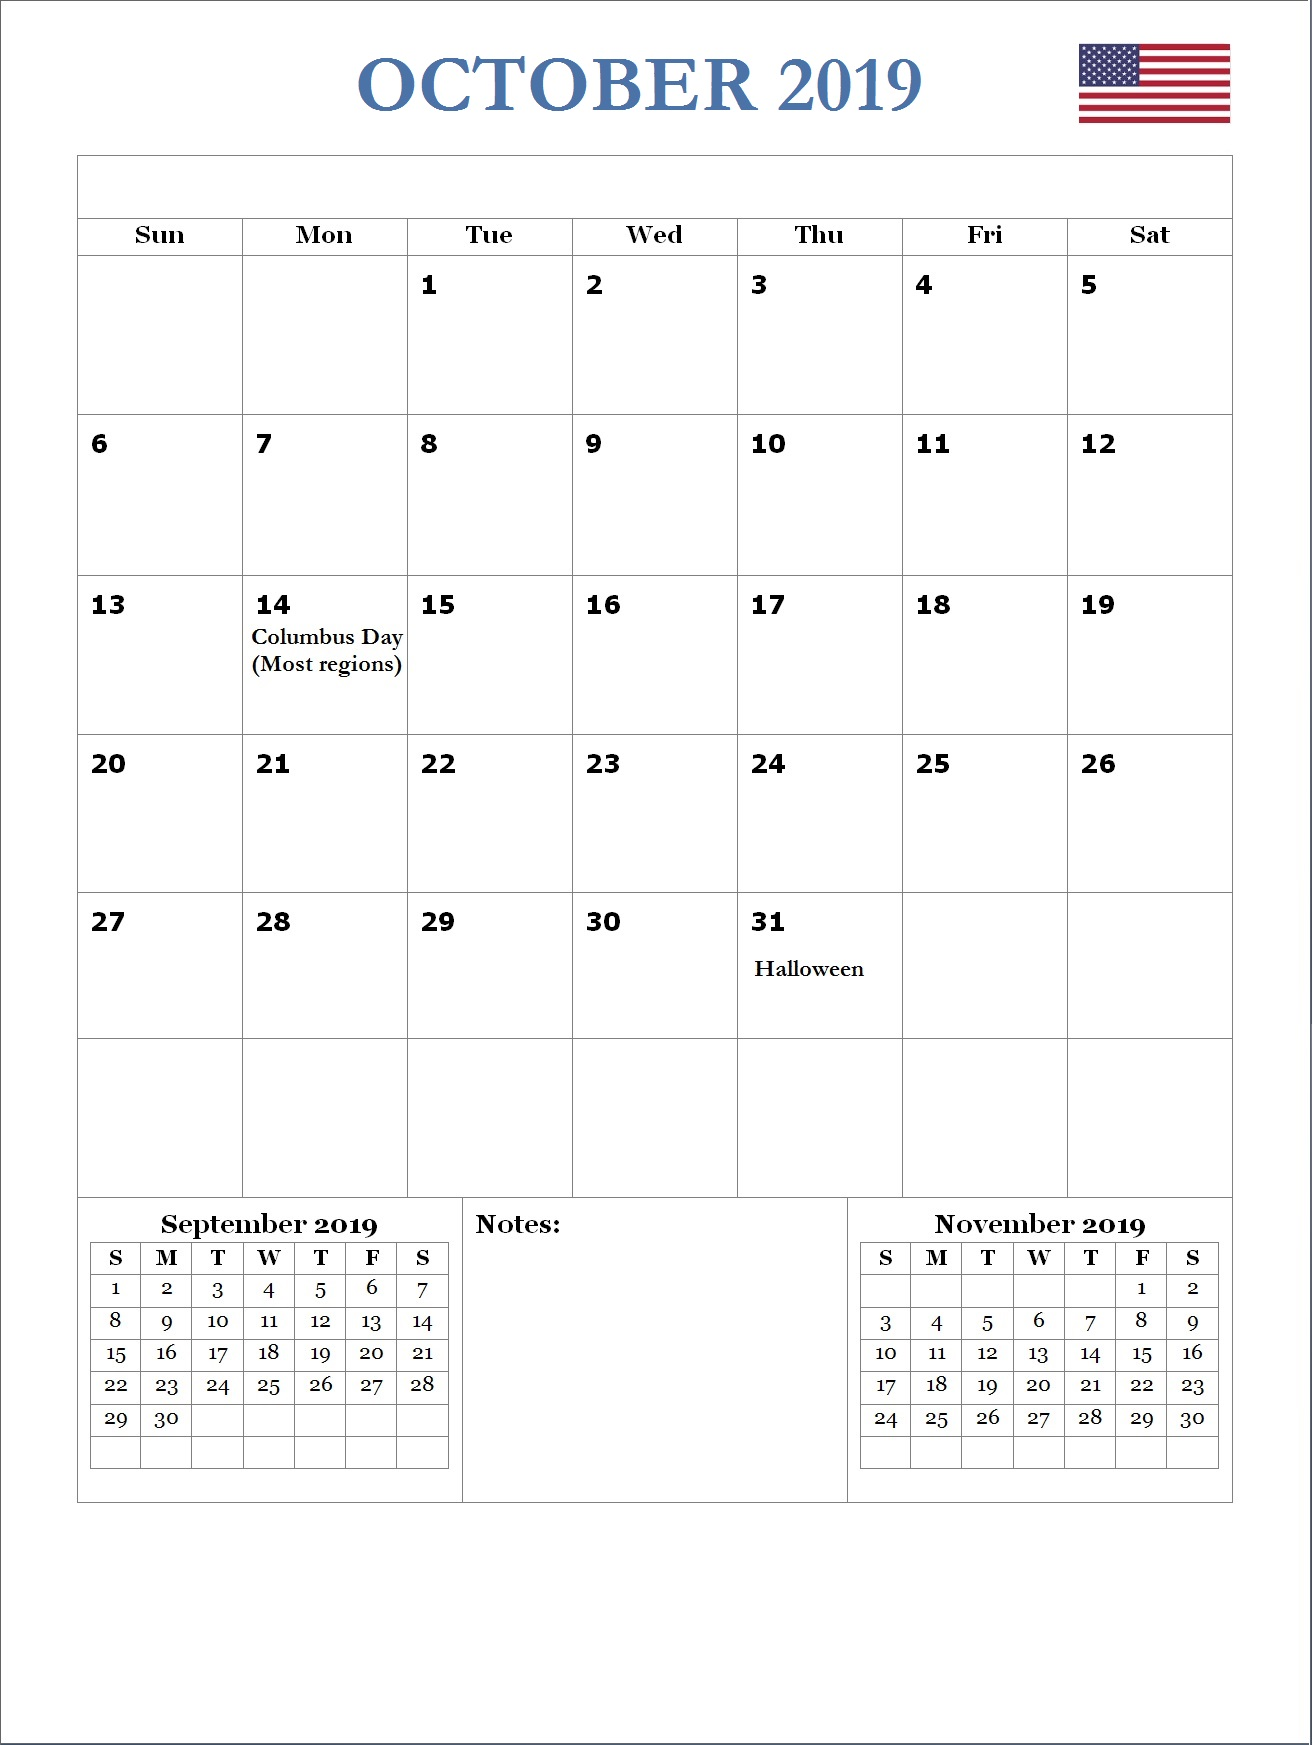 2019 October USA Holidays Calendar